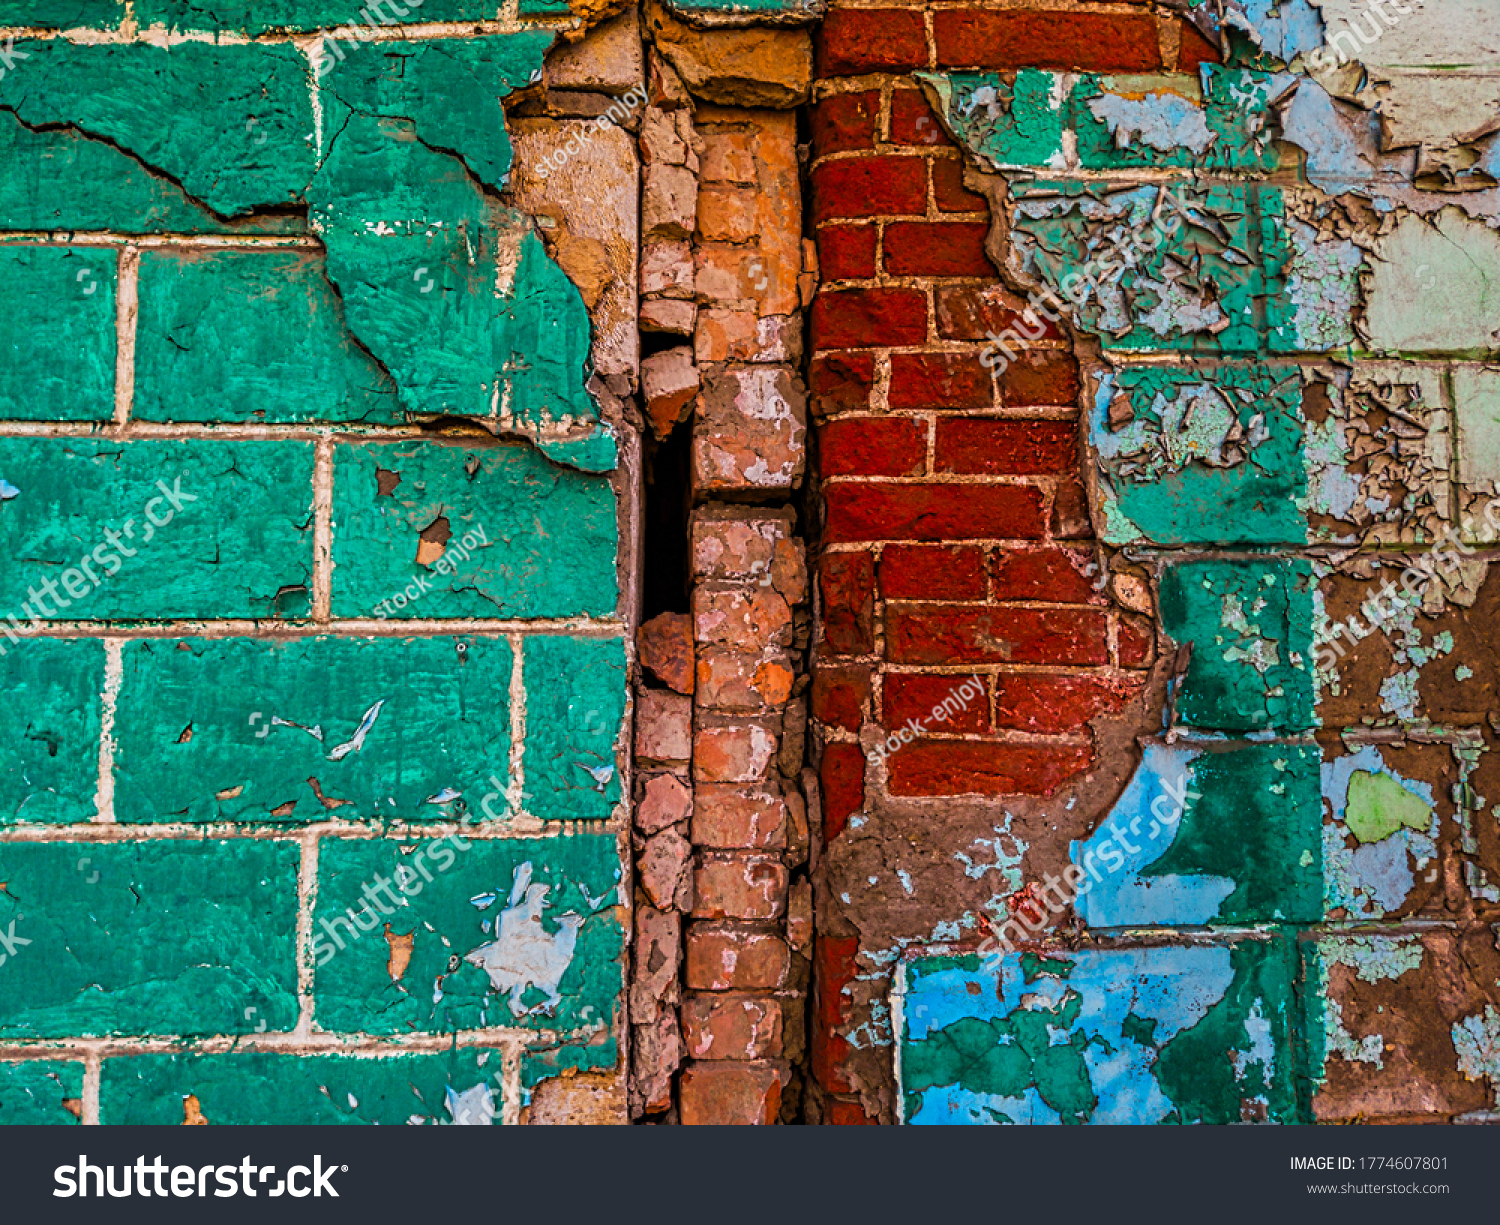 Semi-destroyed contact of two walls of different sizes of bricks